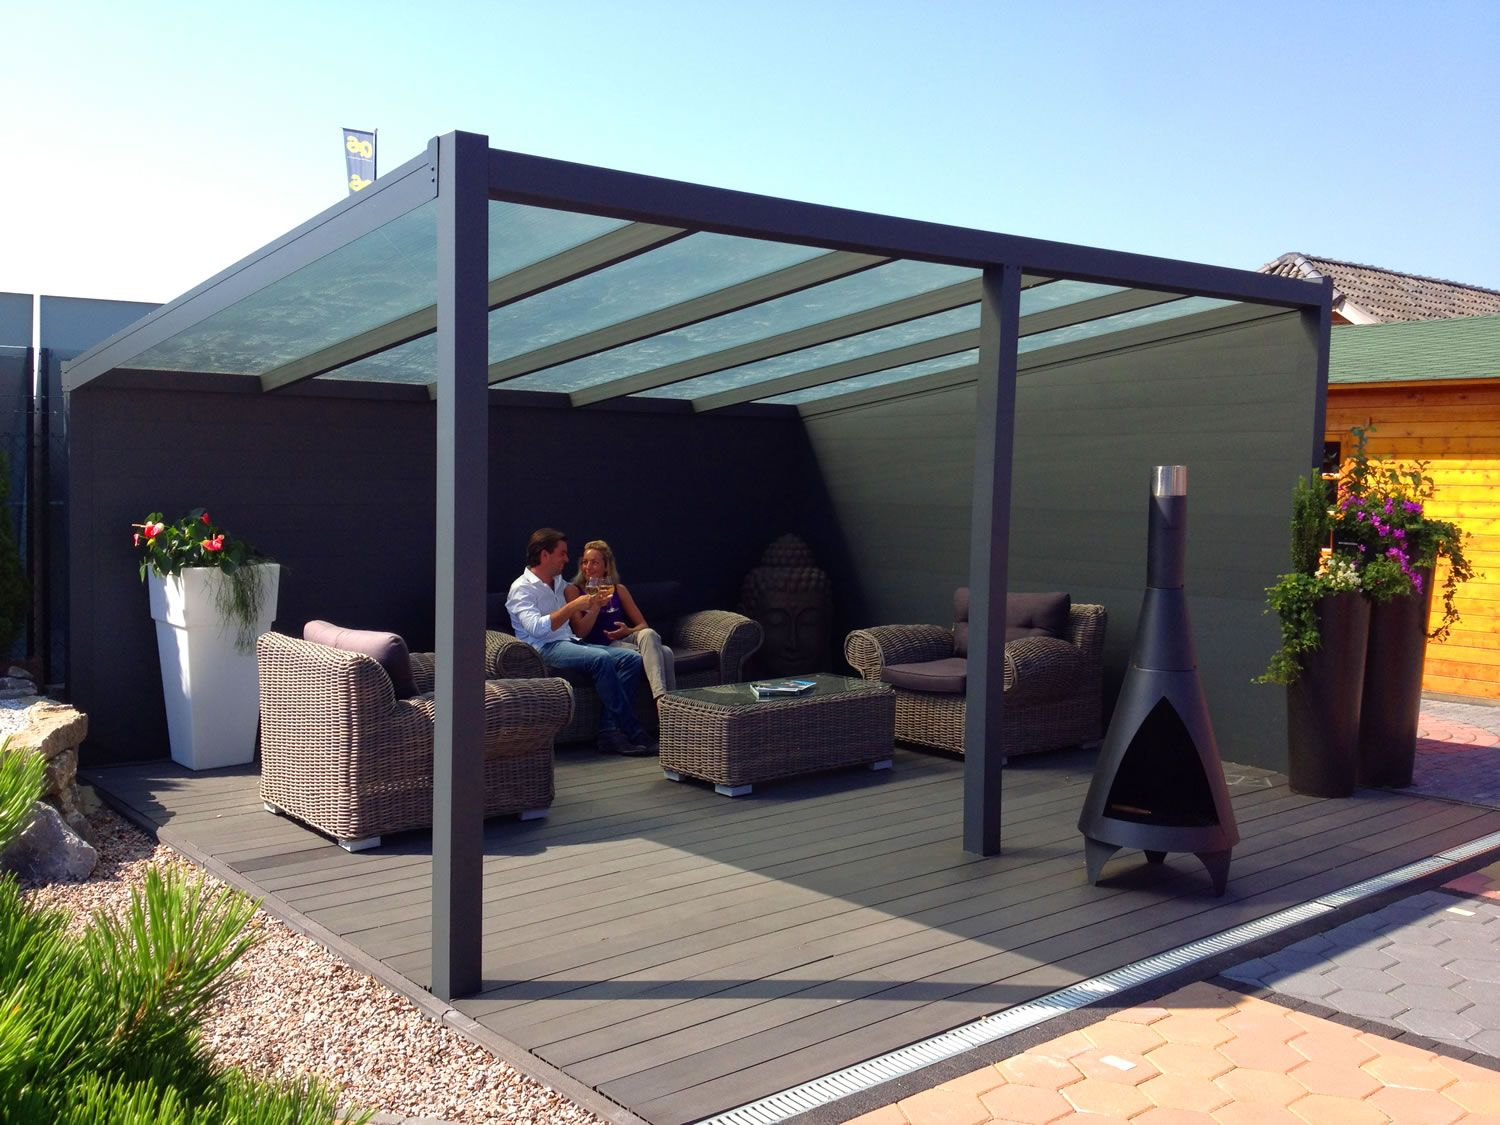 Garden Canopy Ideas Glass veranda 2m depth garden canopy verandas and canopy a glass prepared aluminium garden canopy veranda with a depth of 20m this is also available in other depths allowing you to pick and choose the perfect workwithnaturefo